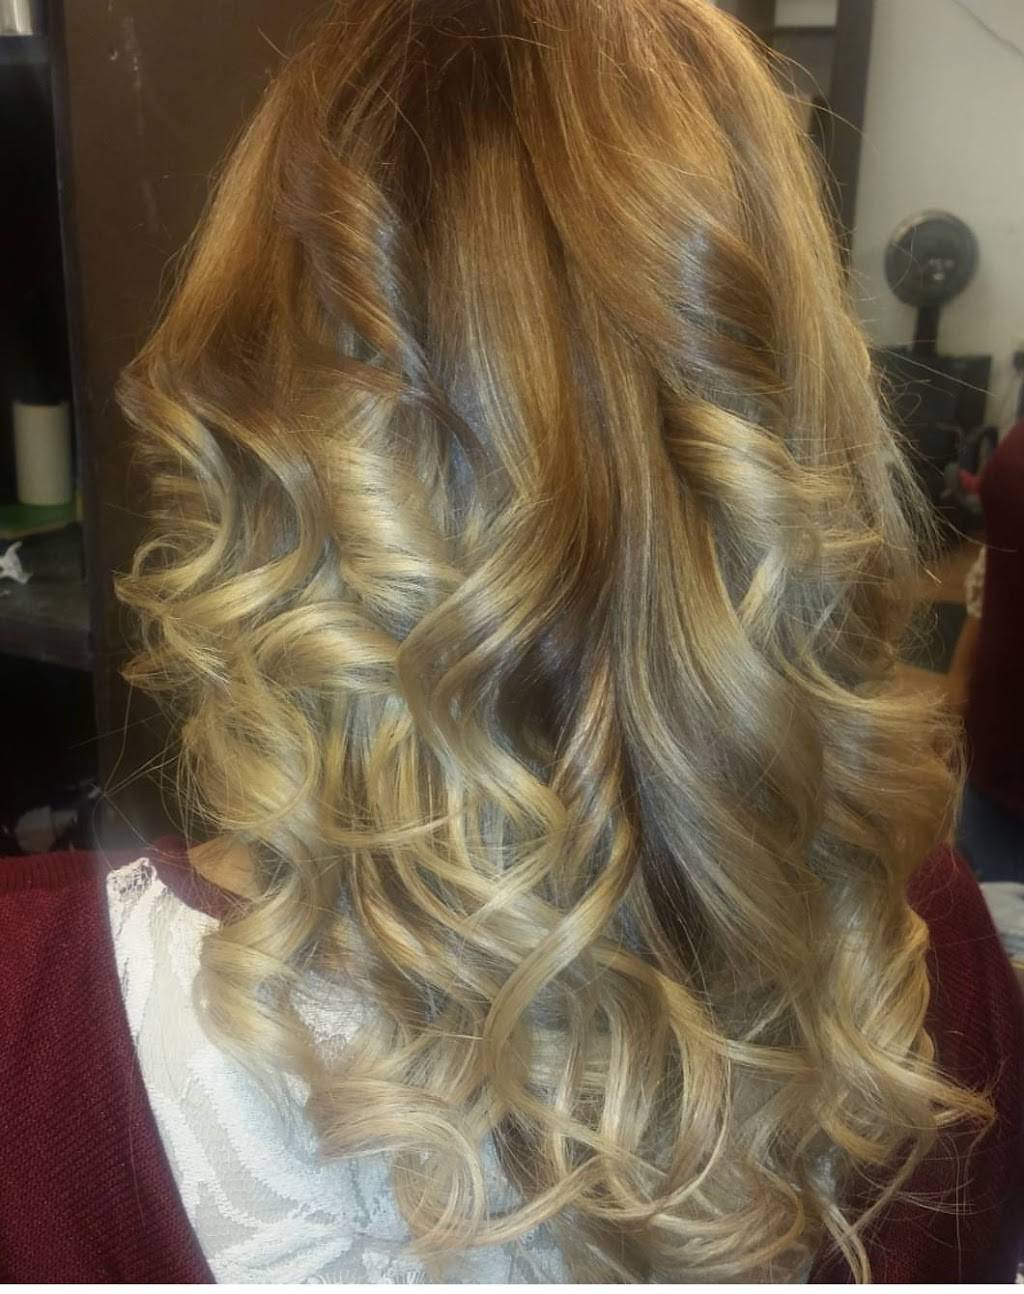 TC Haircuts - hair care  | Photo 9 of 10 | Address: 7816 Crowley Rd, Fort Worth, TX 76134, USA | Phone: (817) 293-1432